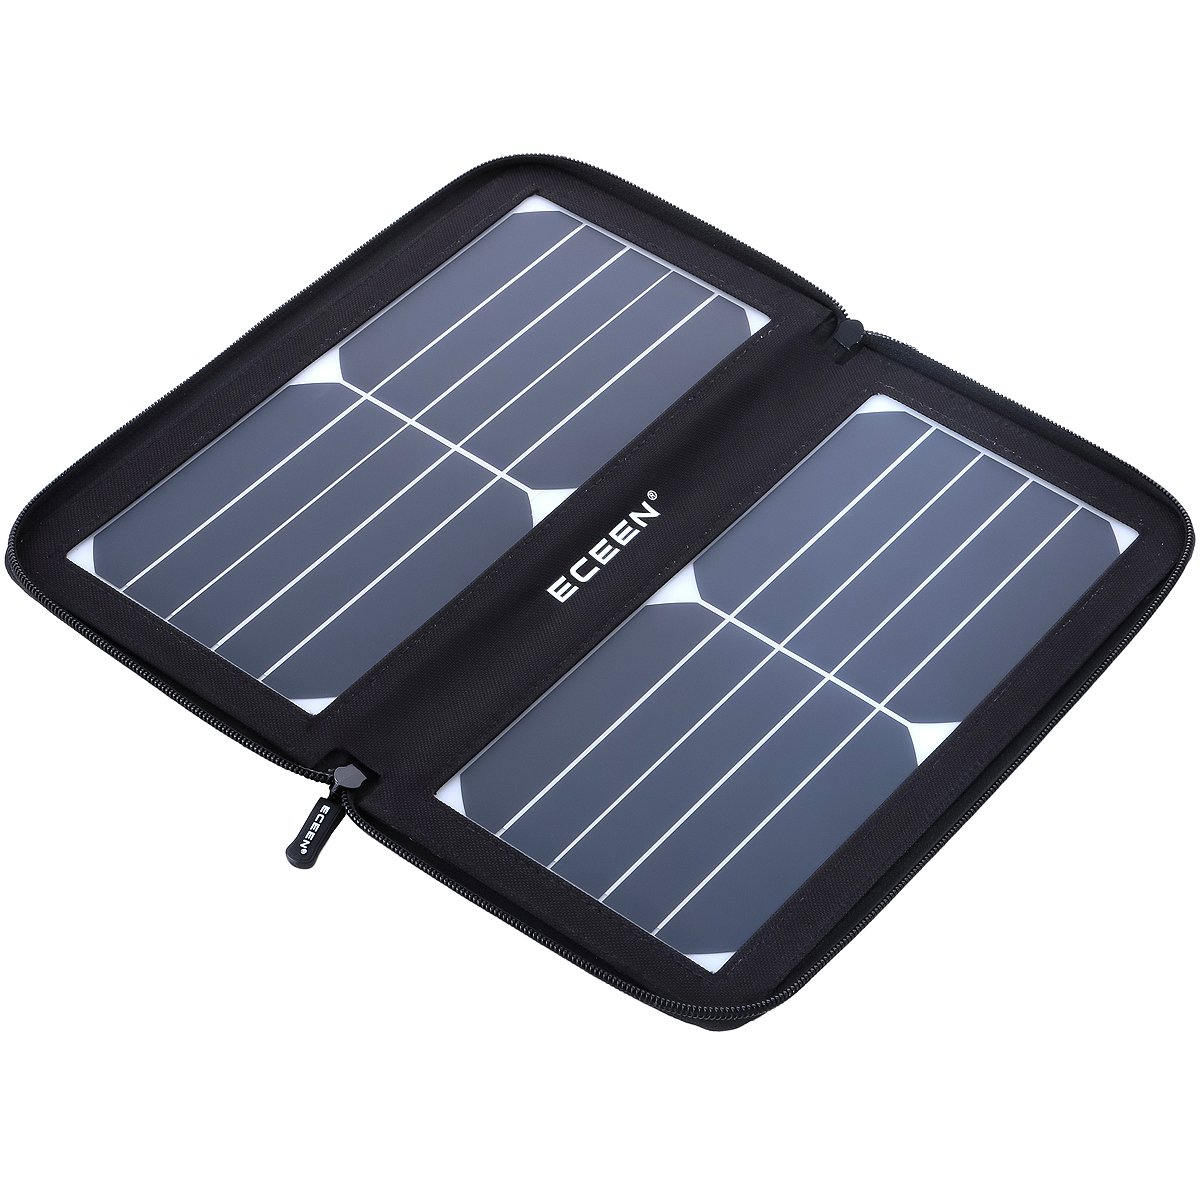 ECEEN Folding Solar Panel Phone Charger With USB Port,Zipper Pack for iPhone, iPad, iPods, Samsung, Android Smartphones Speaker Gopro All 5V USB-Charging Devices (Black) by ECEEN